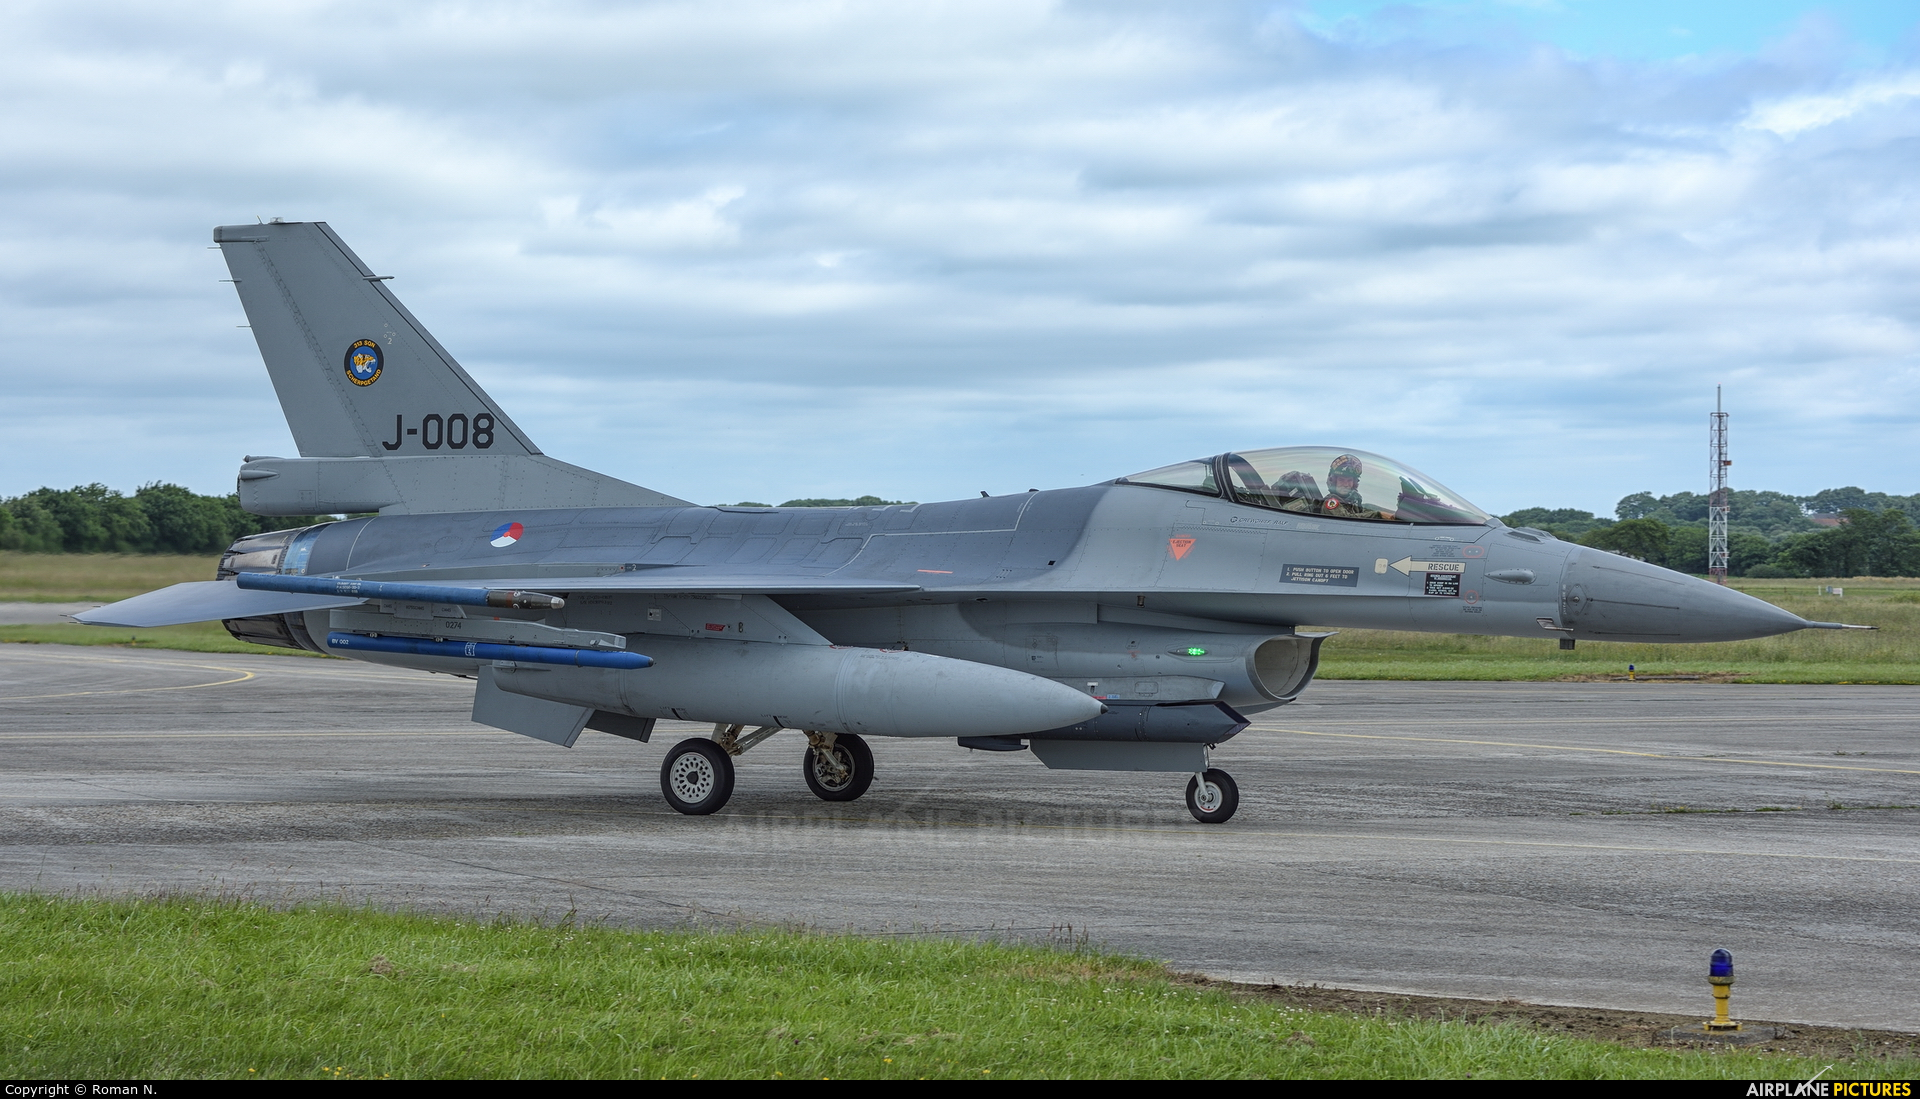 Netherlands - Air Force J-008 aircraft at Landivisiau